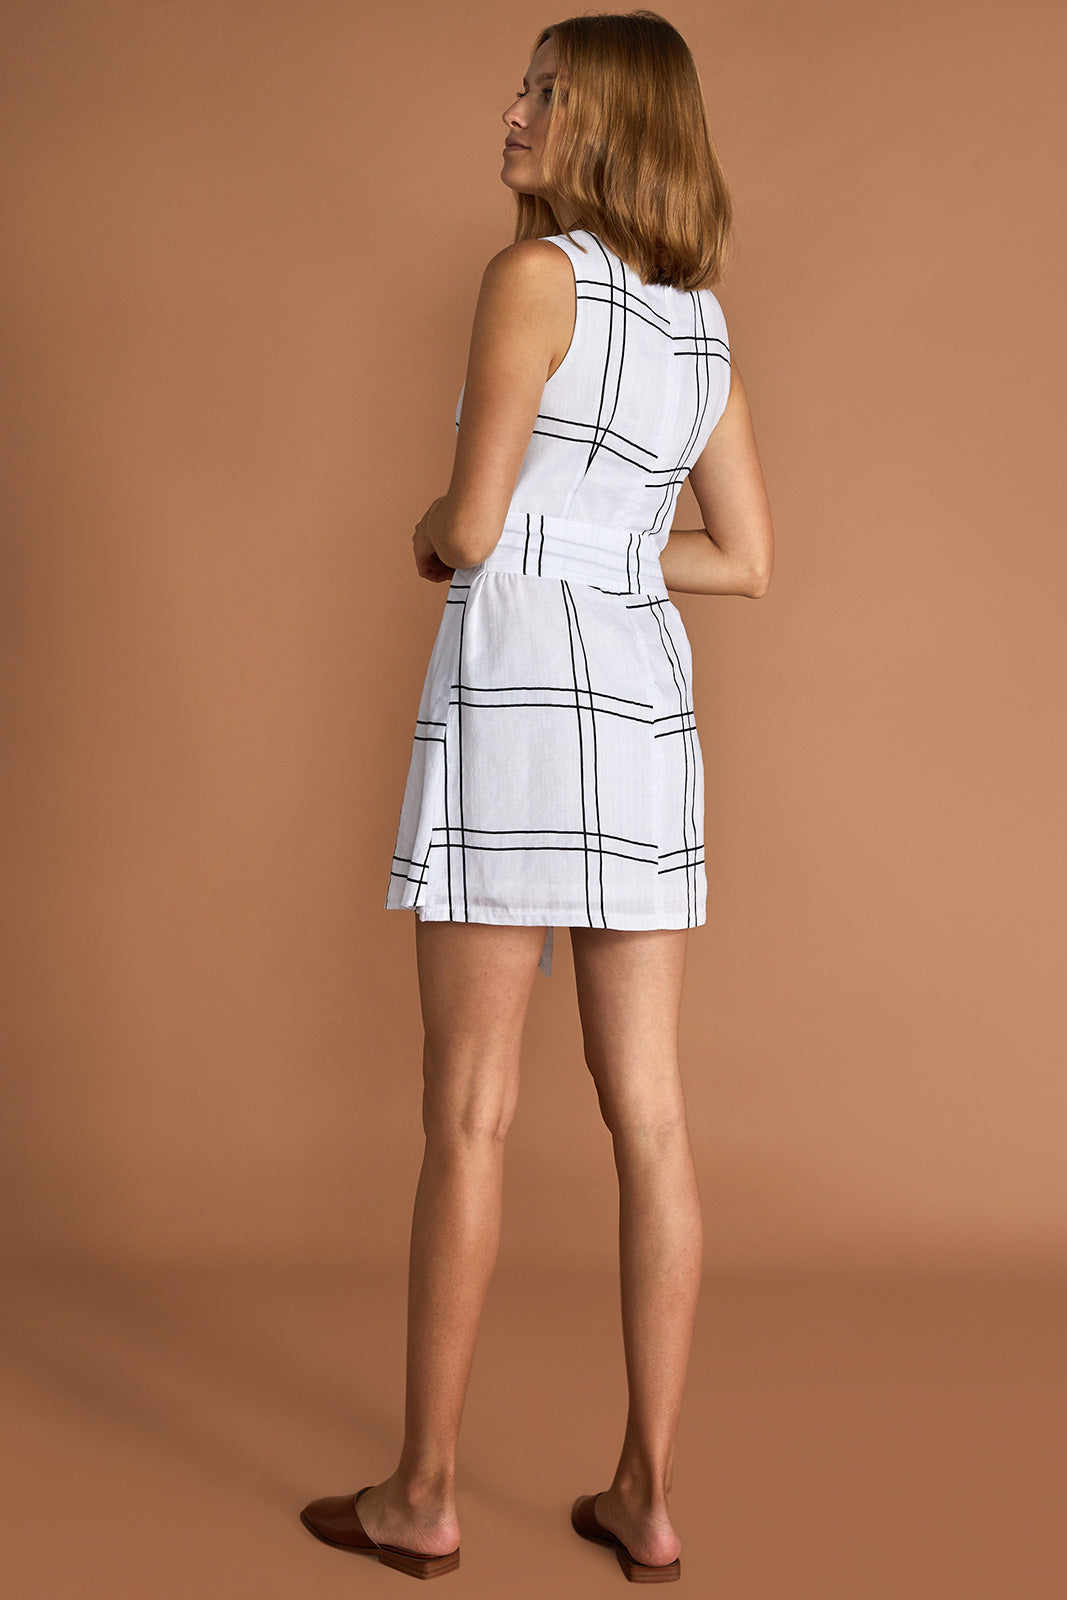 THE ENIKO DRESS